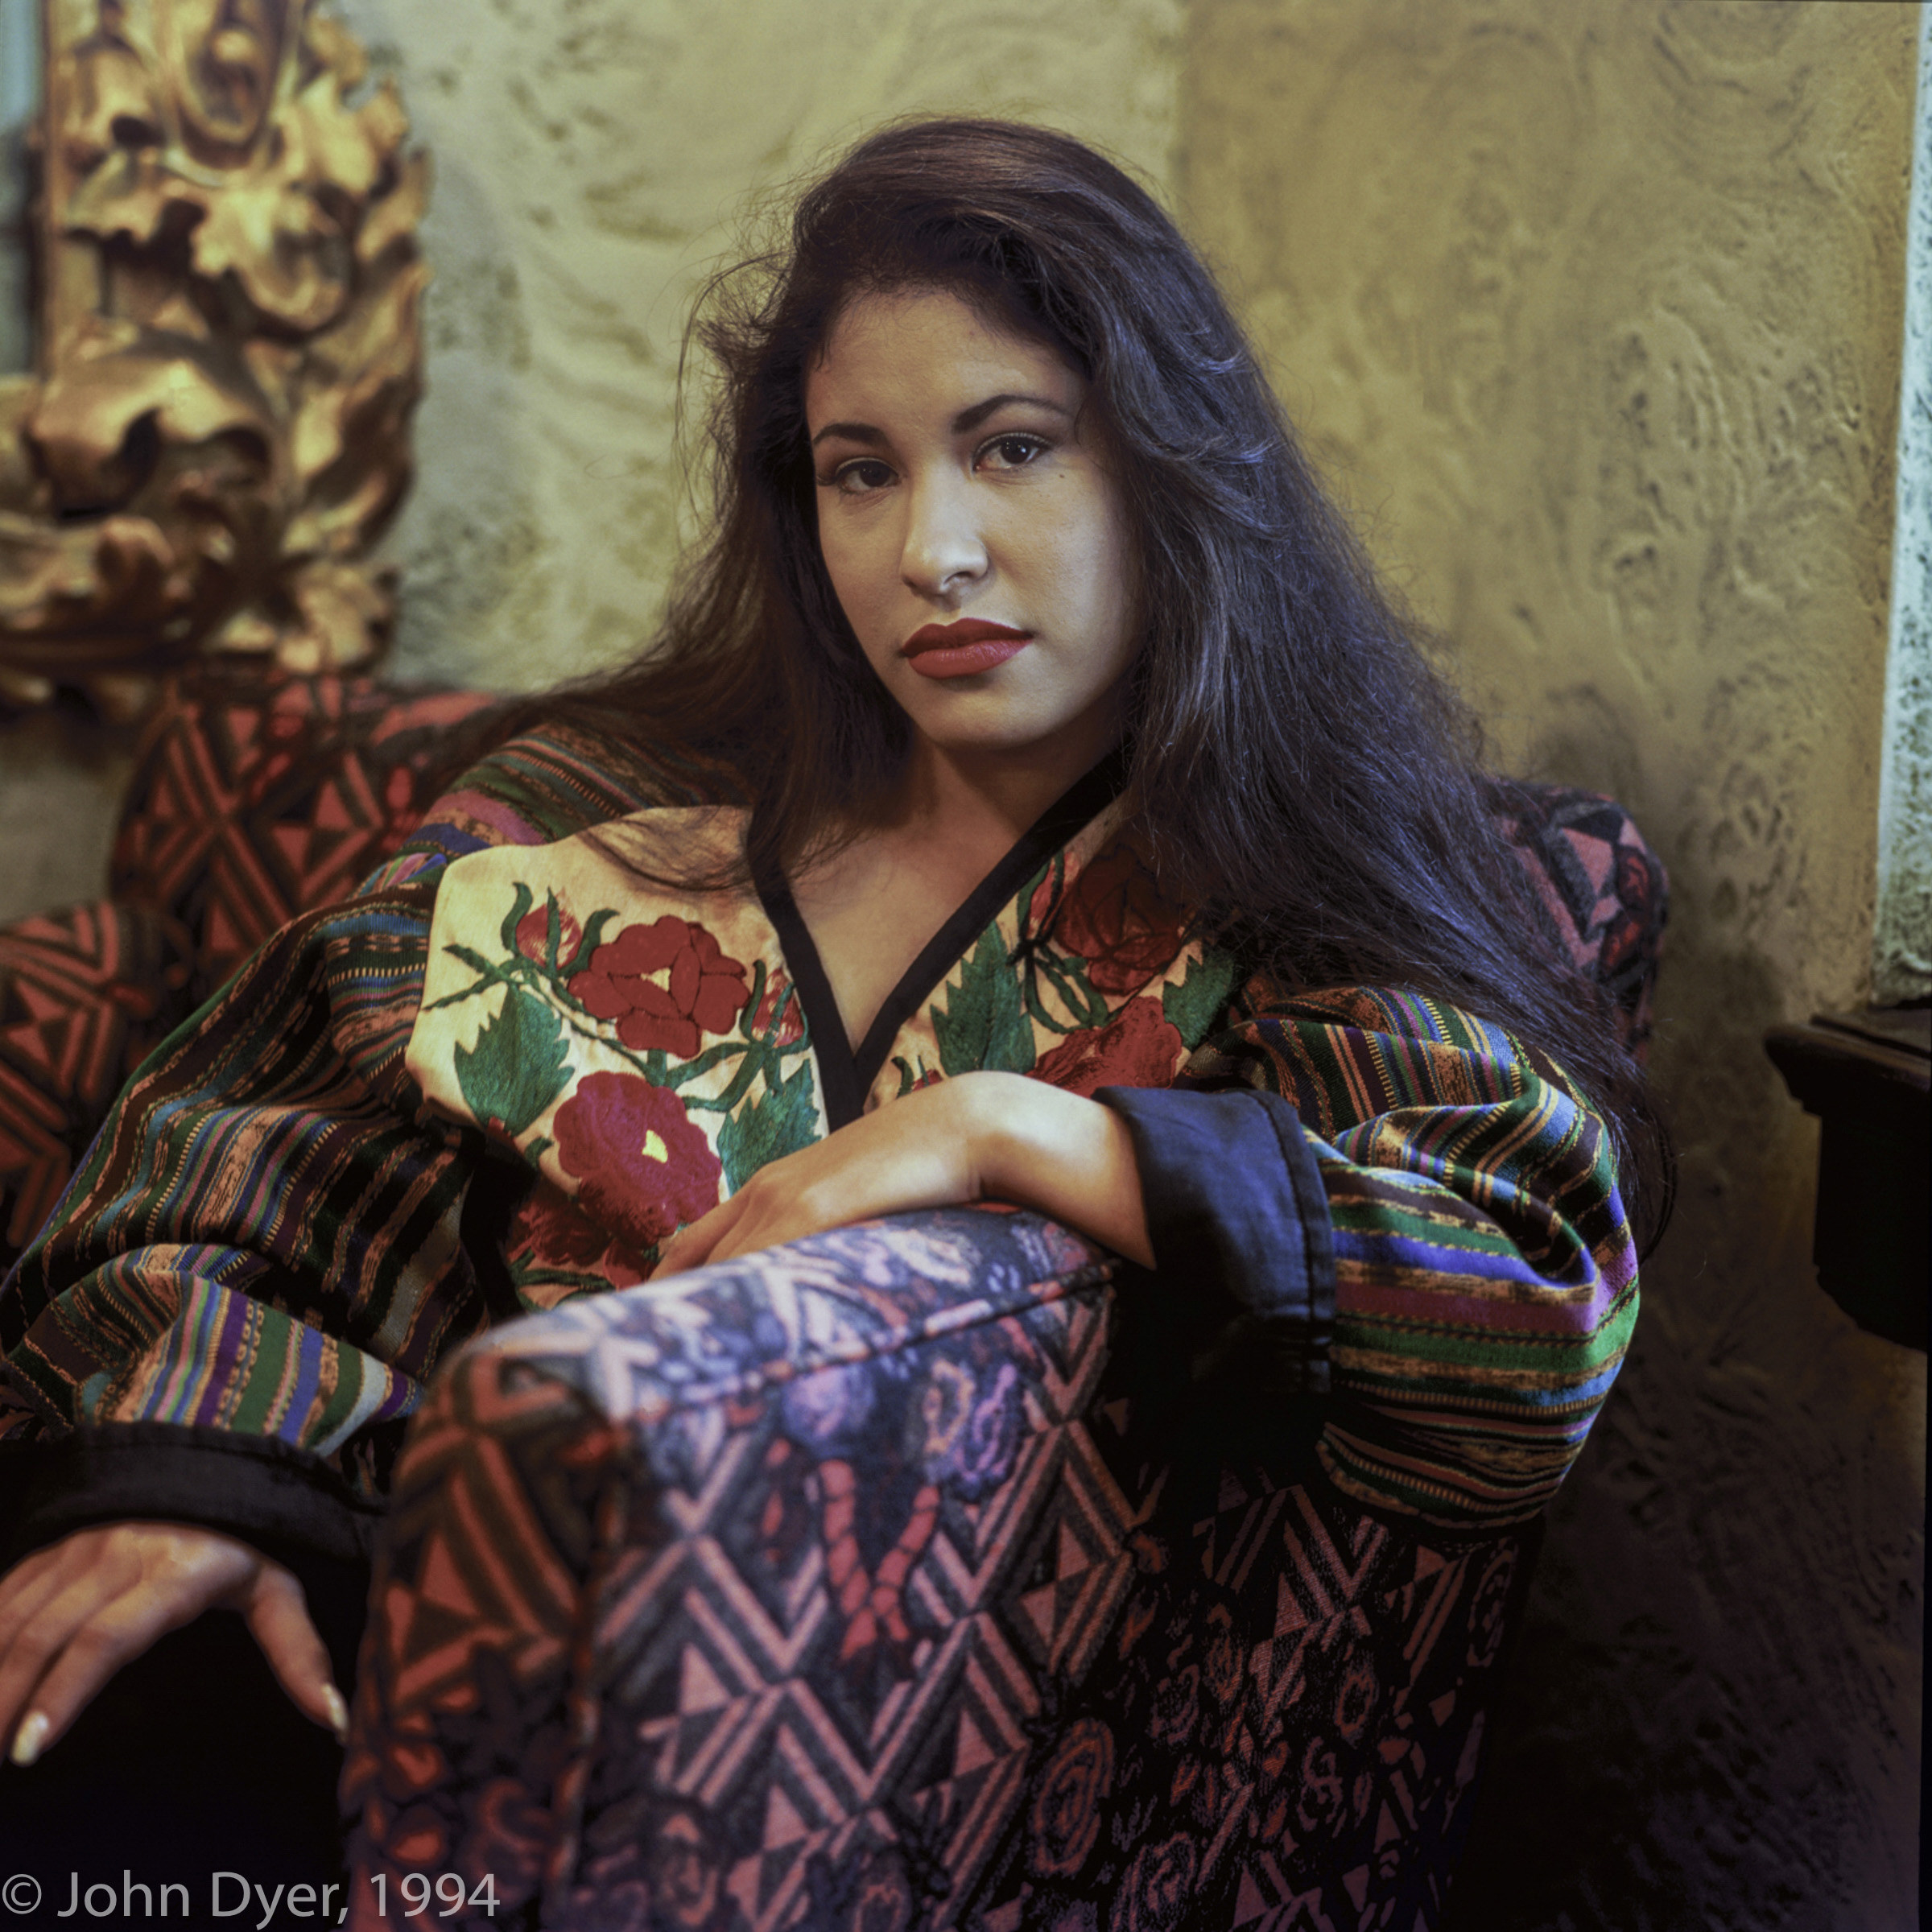 selena quintanilla posing for the camera while wearing a floral striped jacket, she is sitting down on a patterned chair